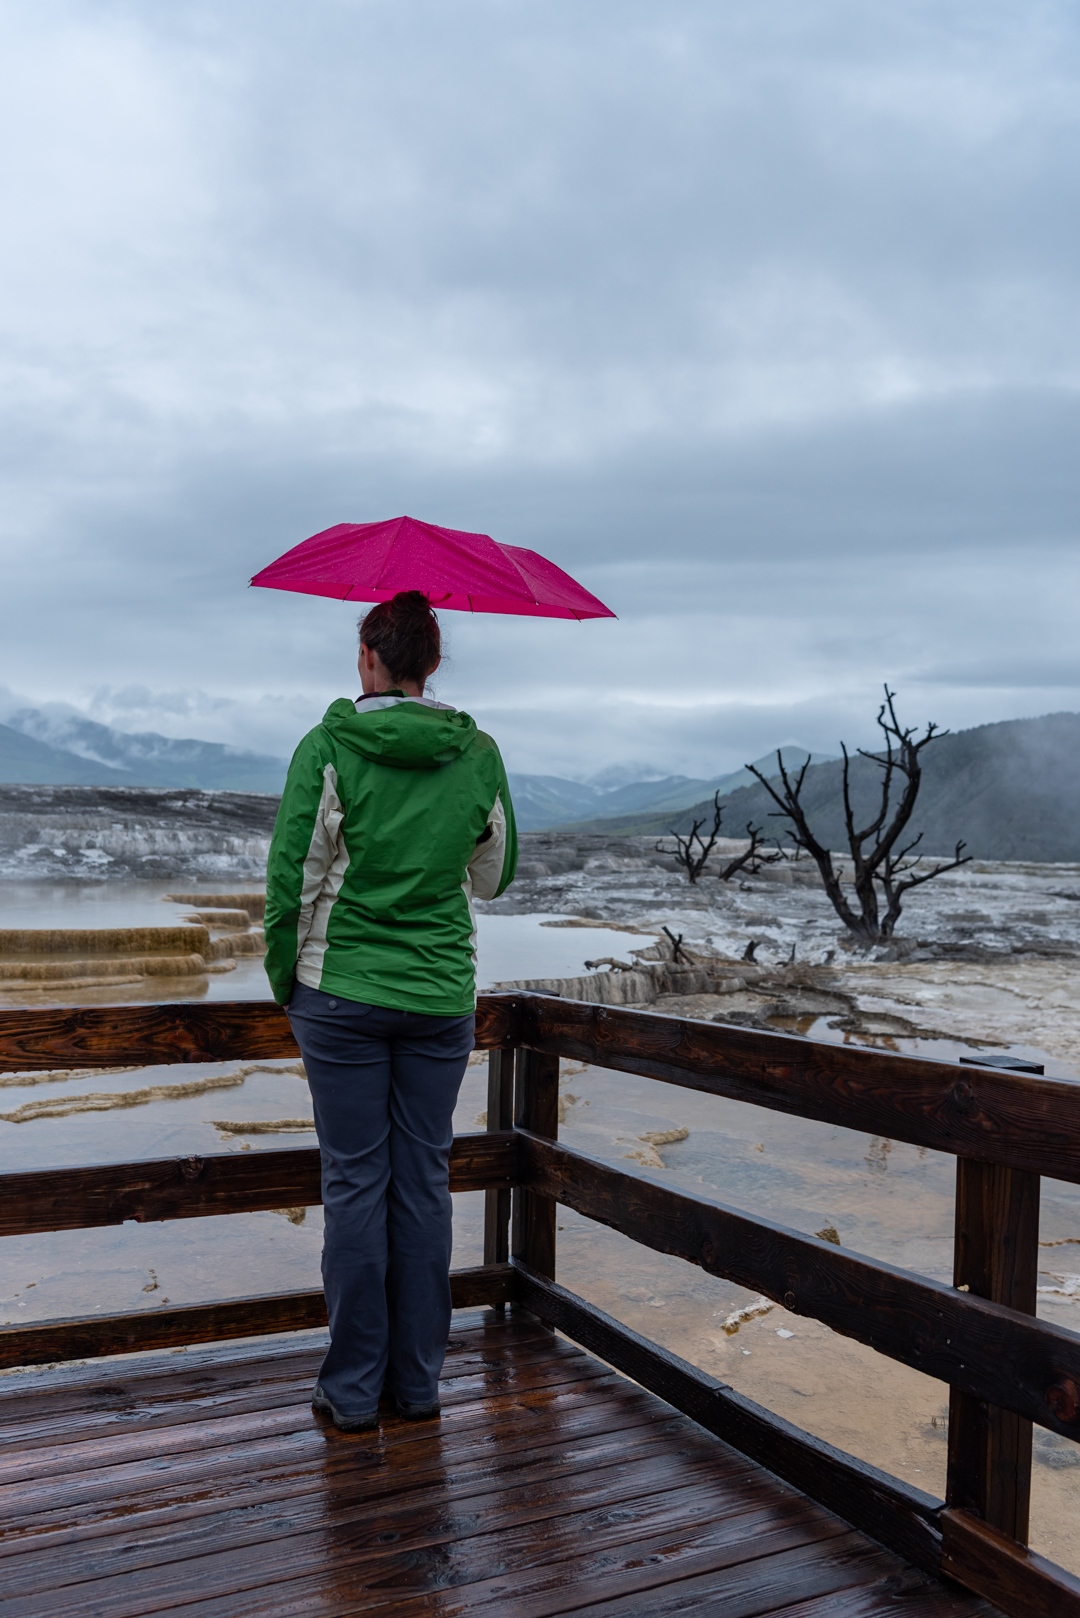 Woman with Pink Umbrella Looks Out Over Hot Springs